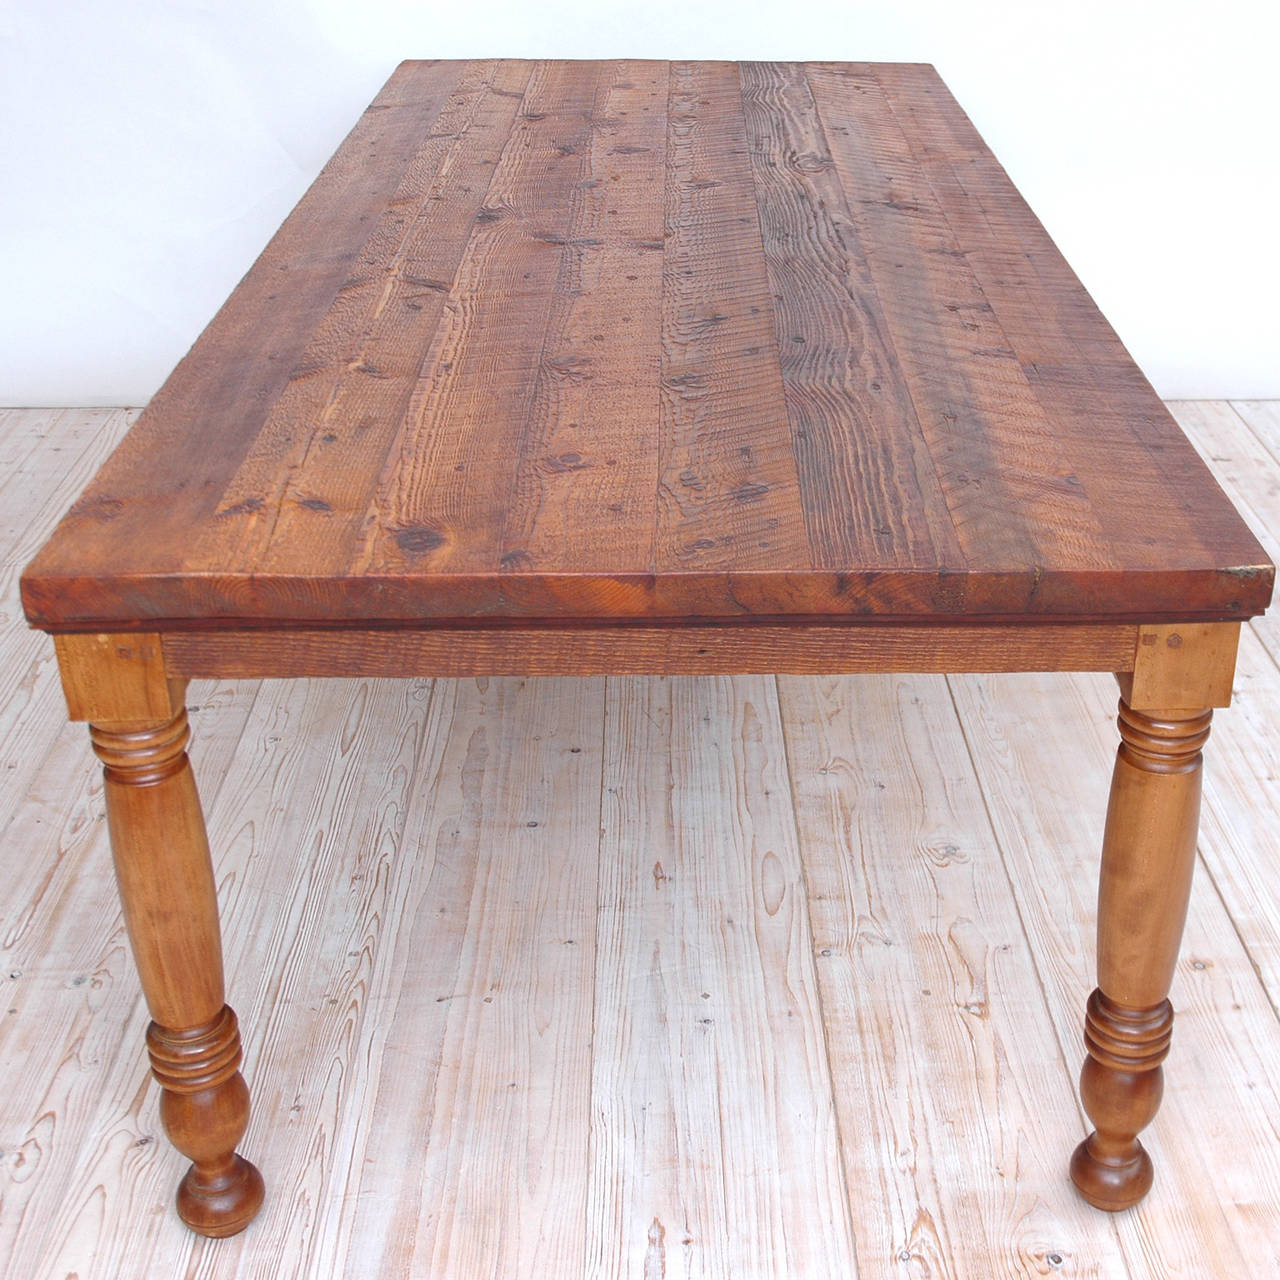 Farm Dining Table For Sale: Vintage Farm House 8' Dining Table In Reclaimed Pine For